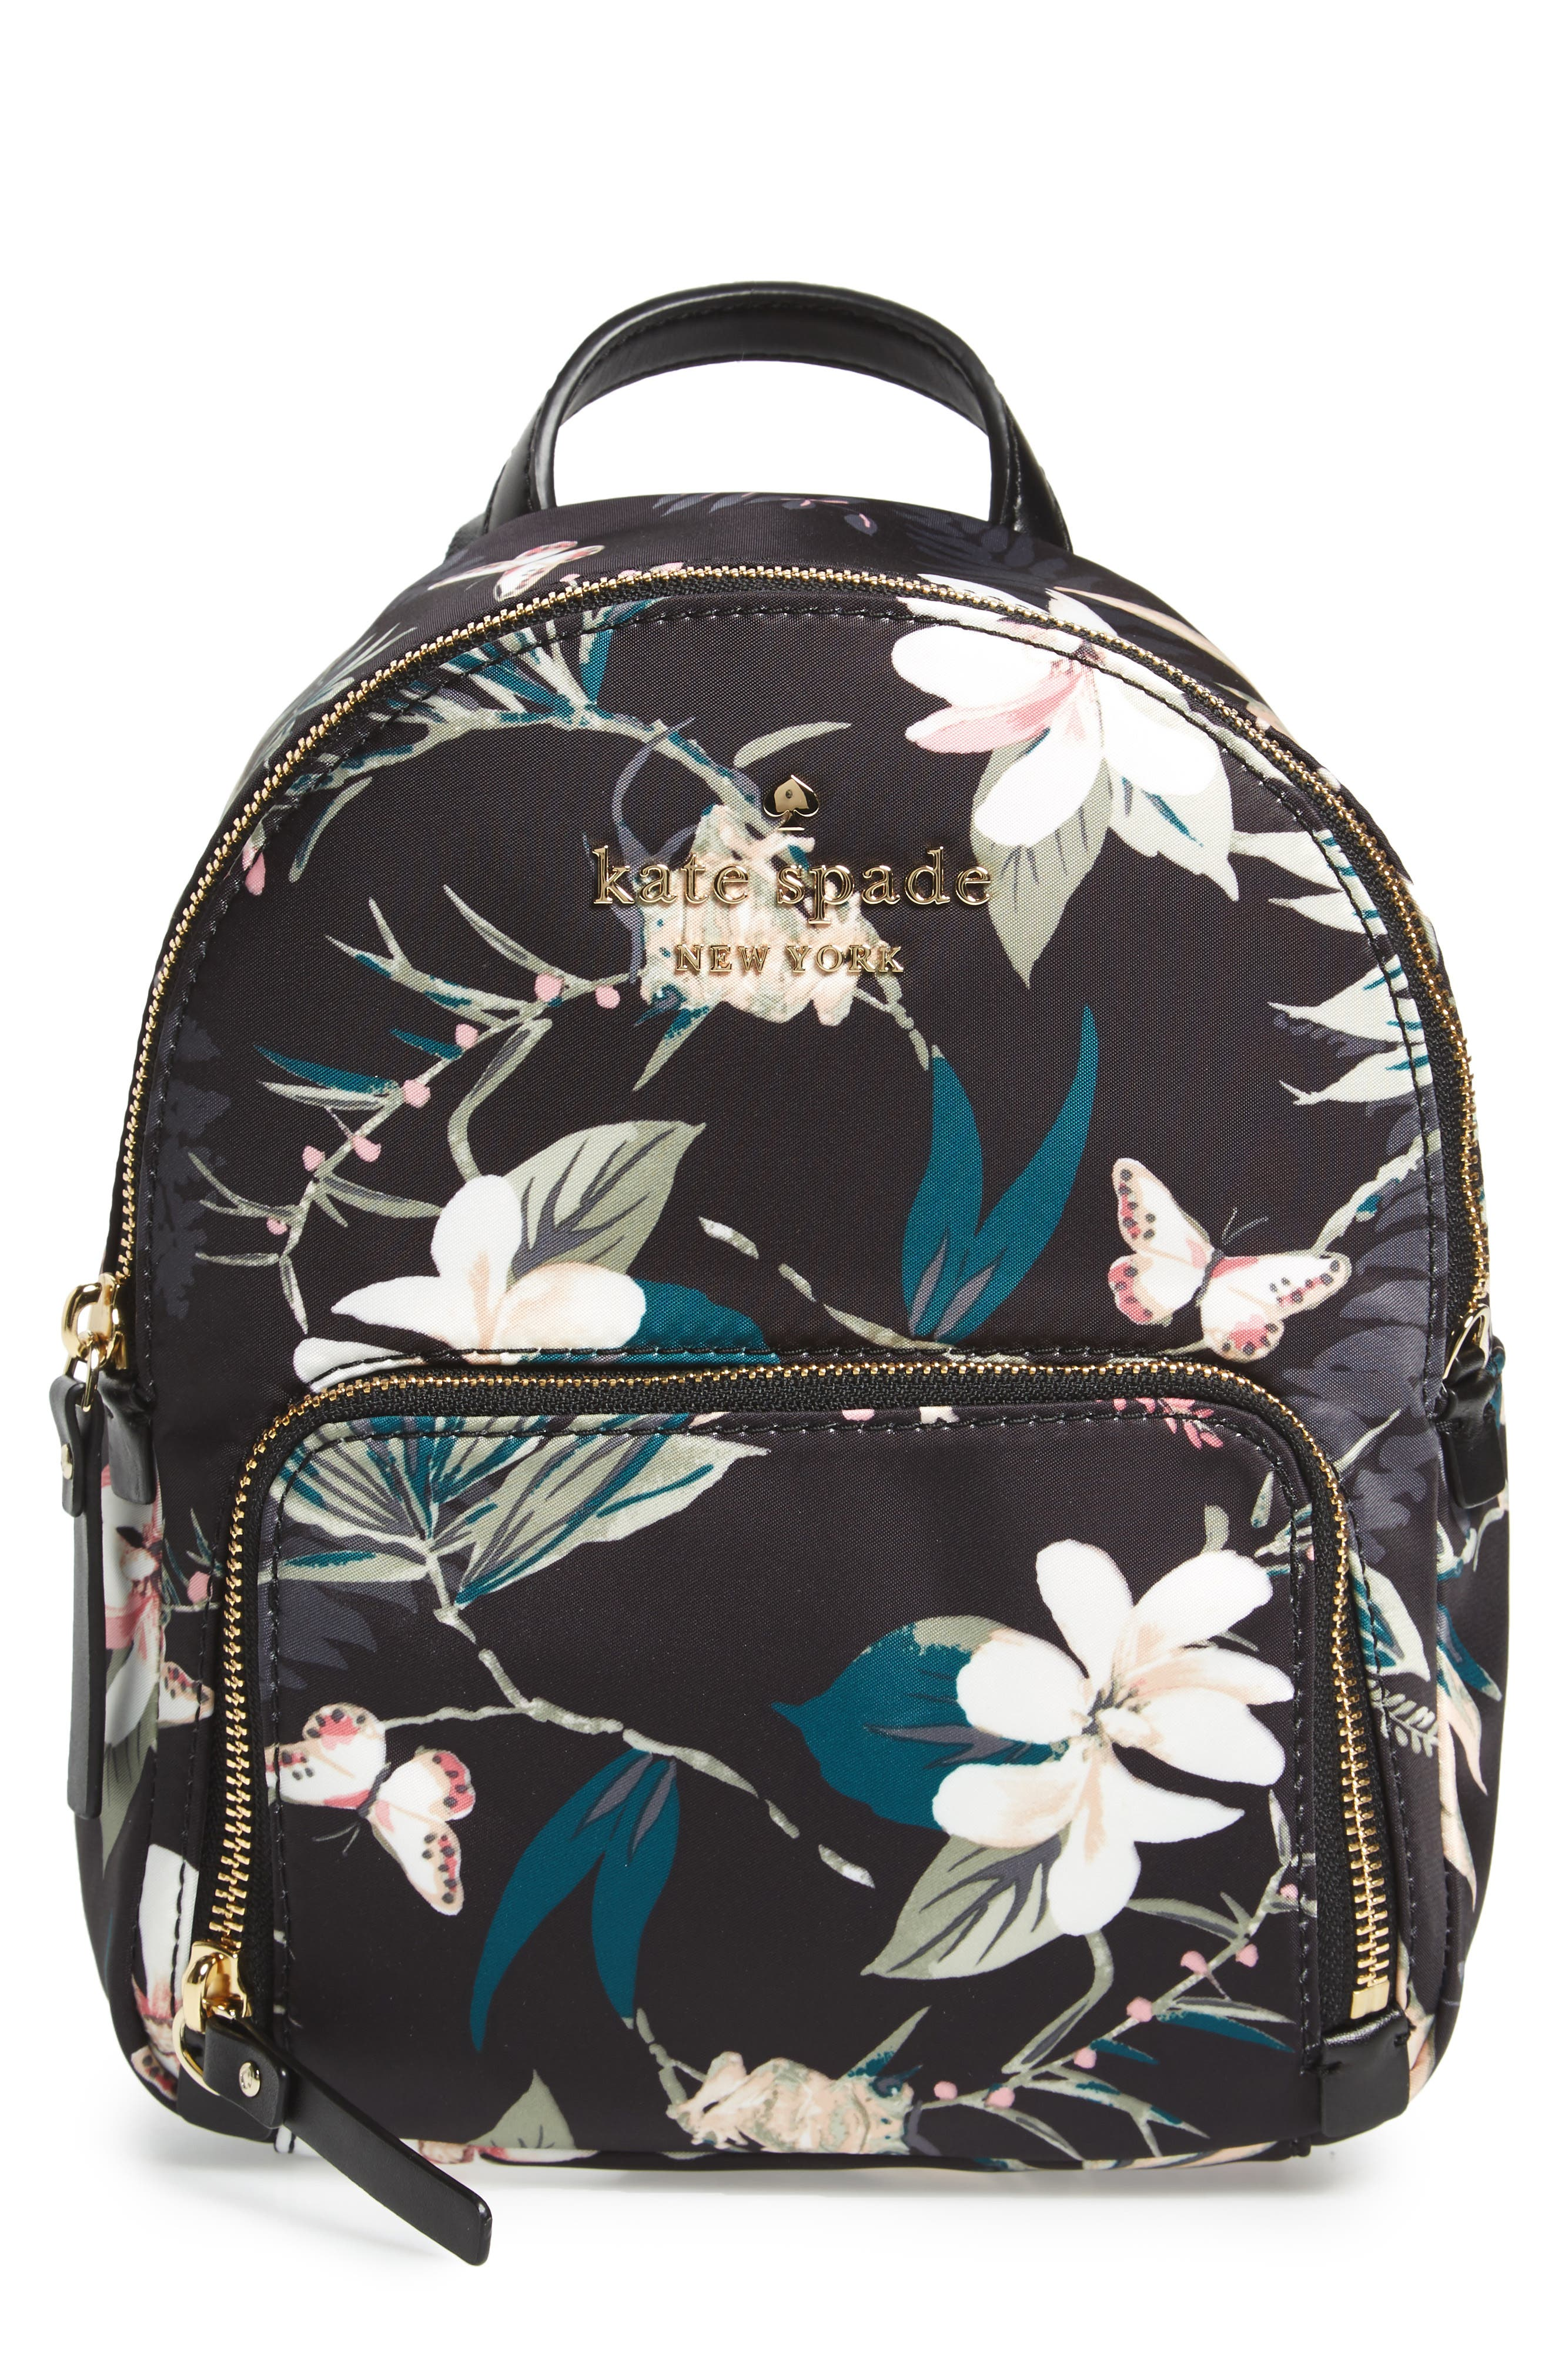 kate spade new york watson lane - botanical small hartley nylon backpack